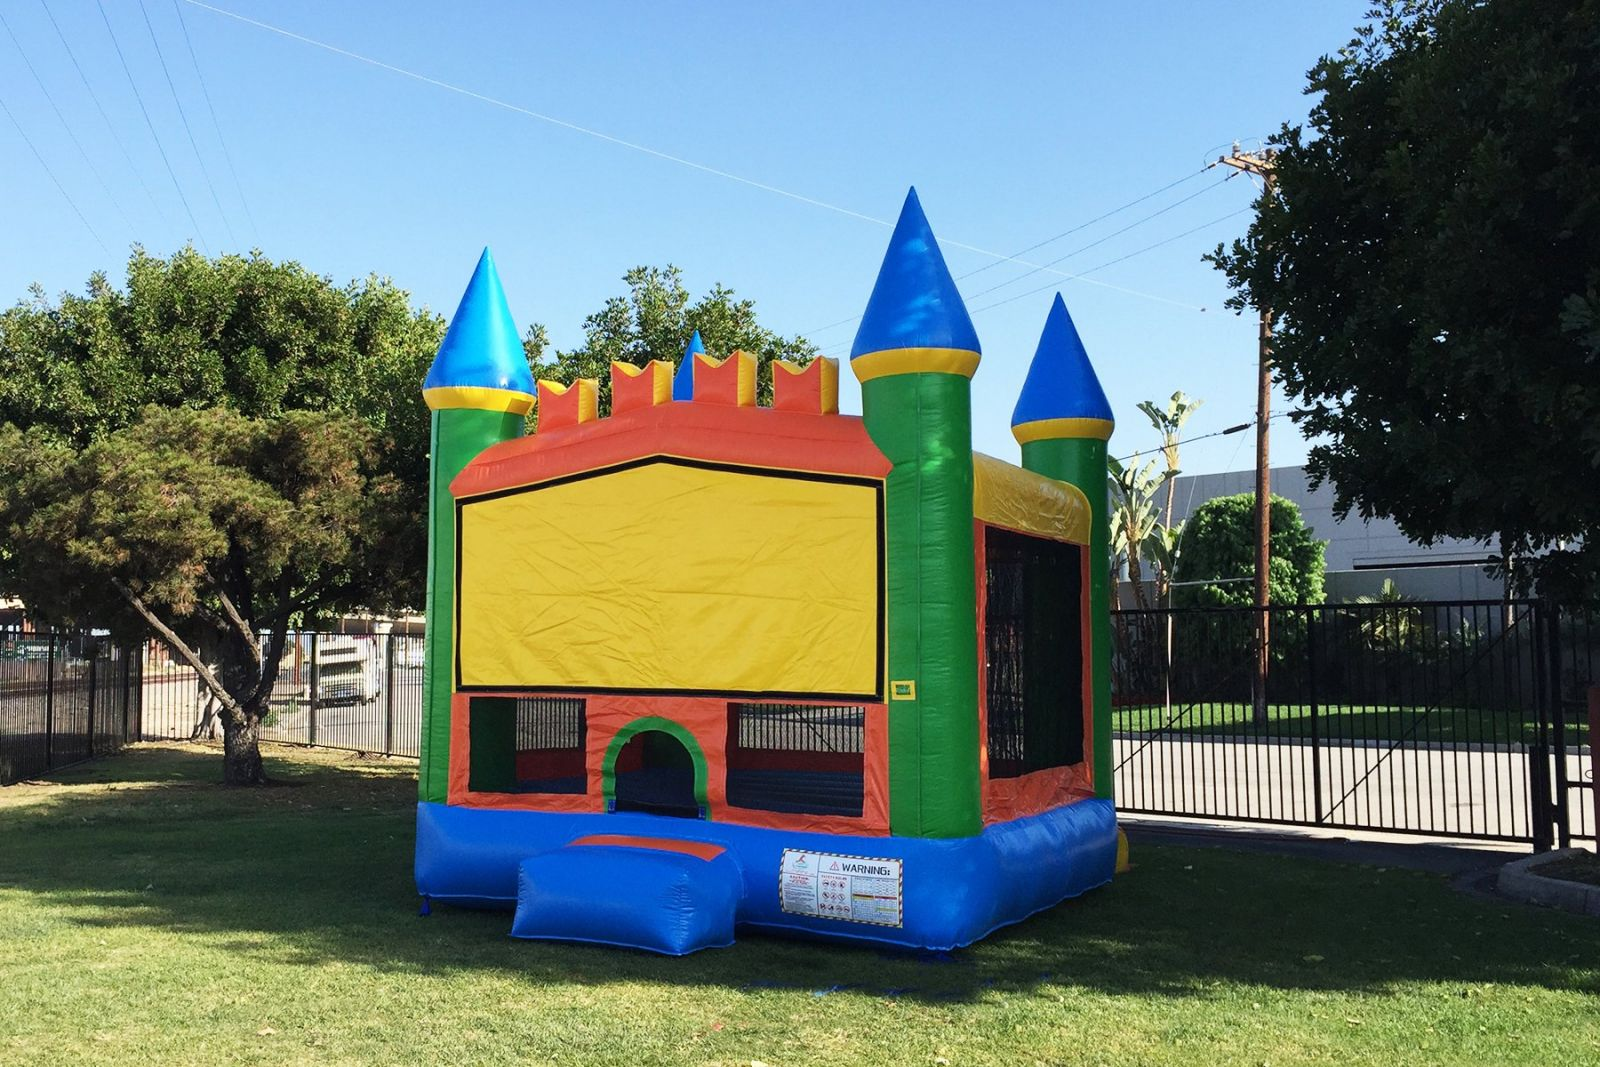 Colorful bounce house on a sunny day